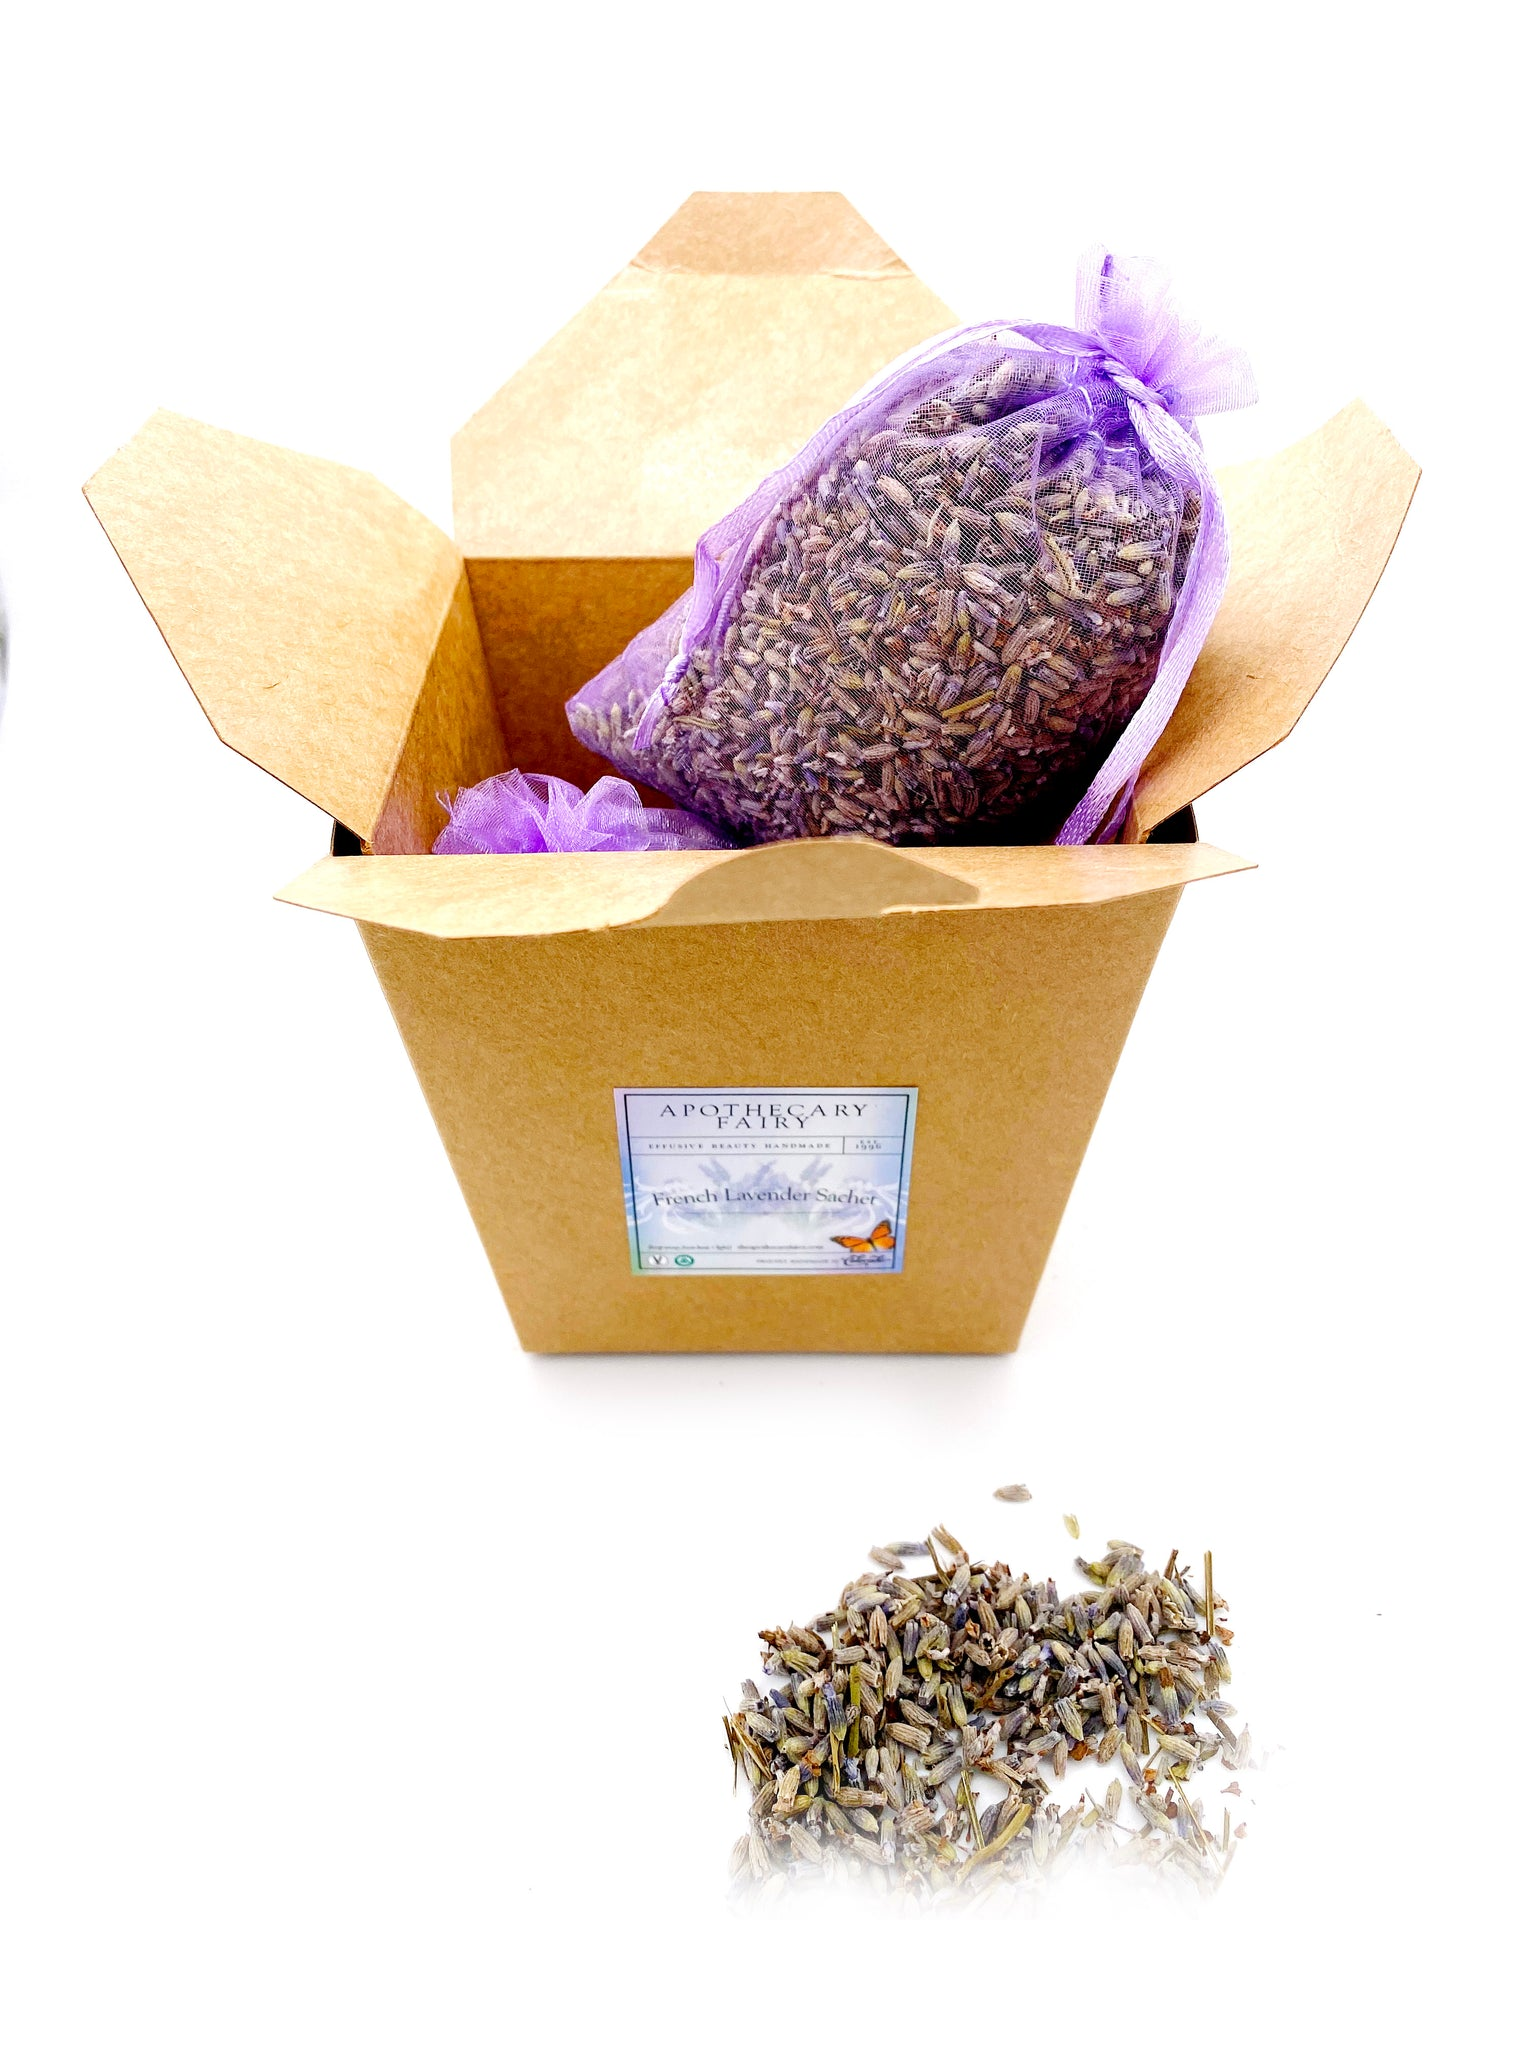 French Lavender Drawer Sachet - The Apothecary Fairy